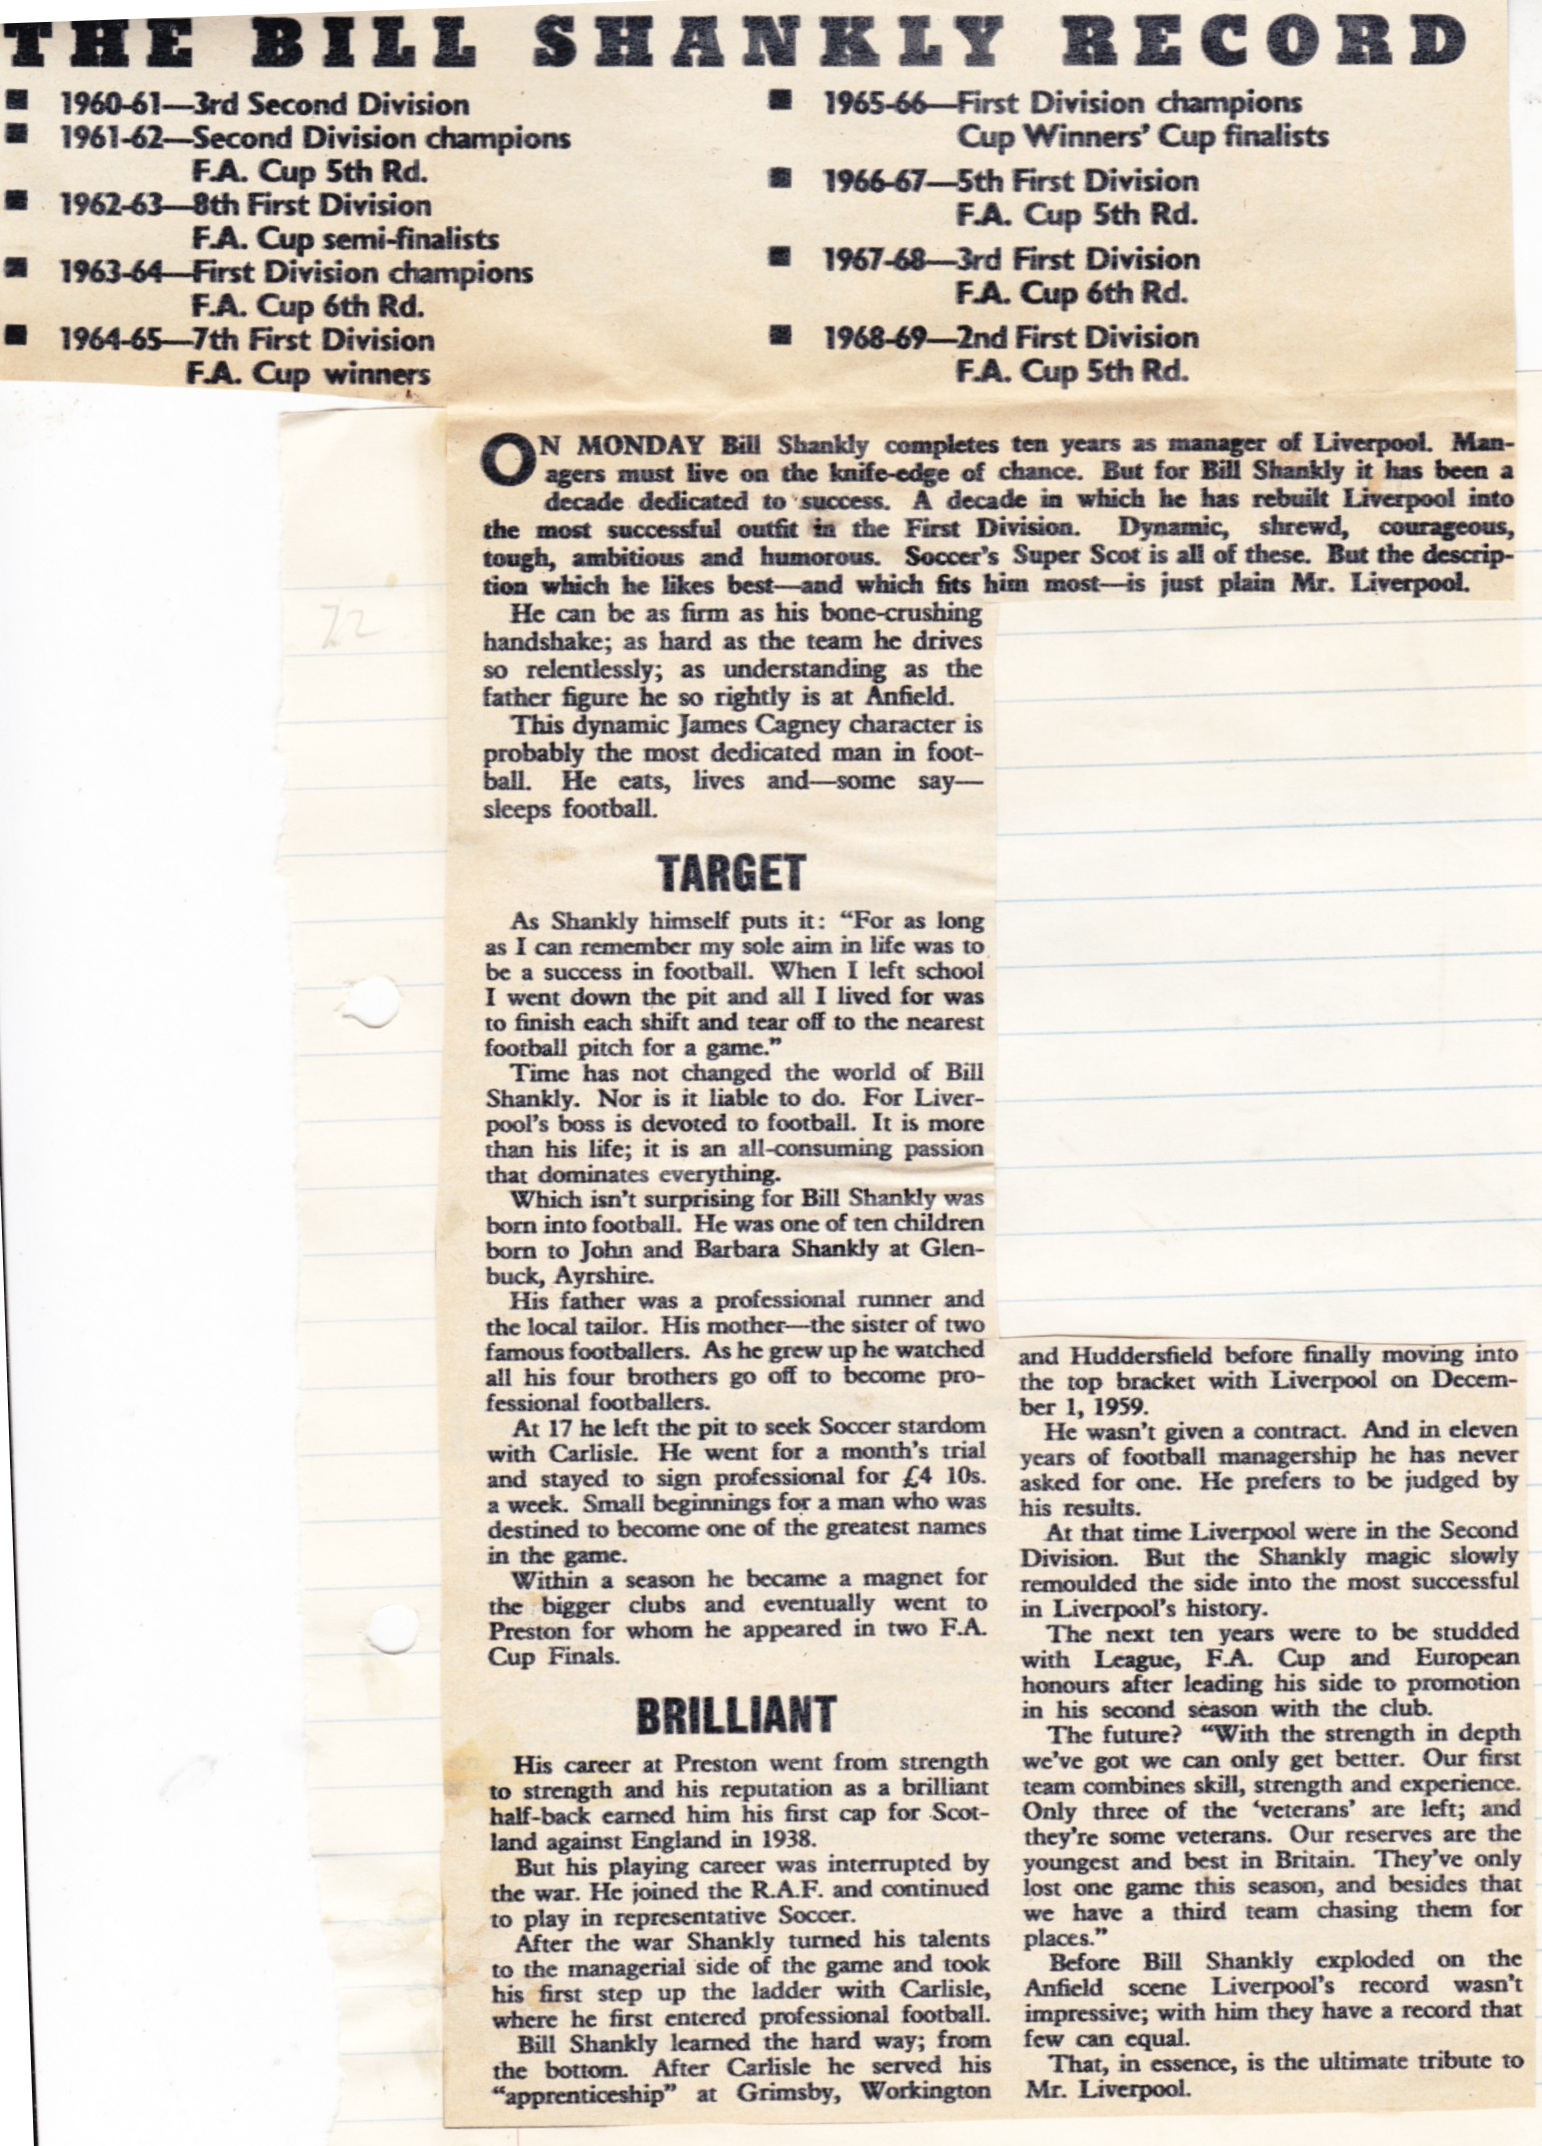 Shankly's record - November 1969